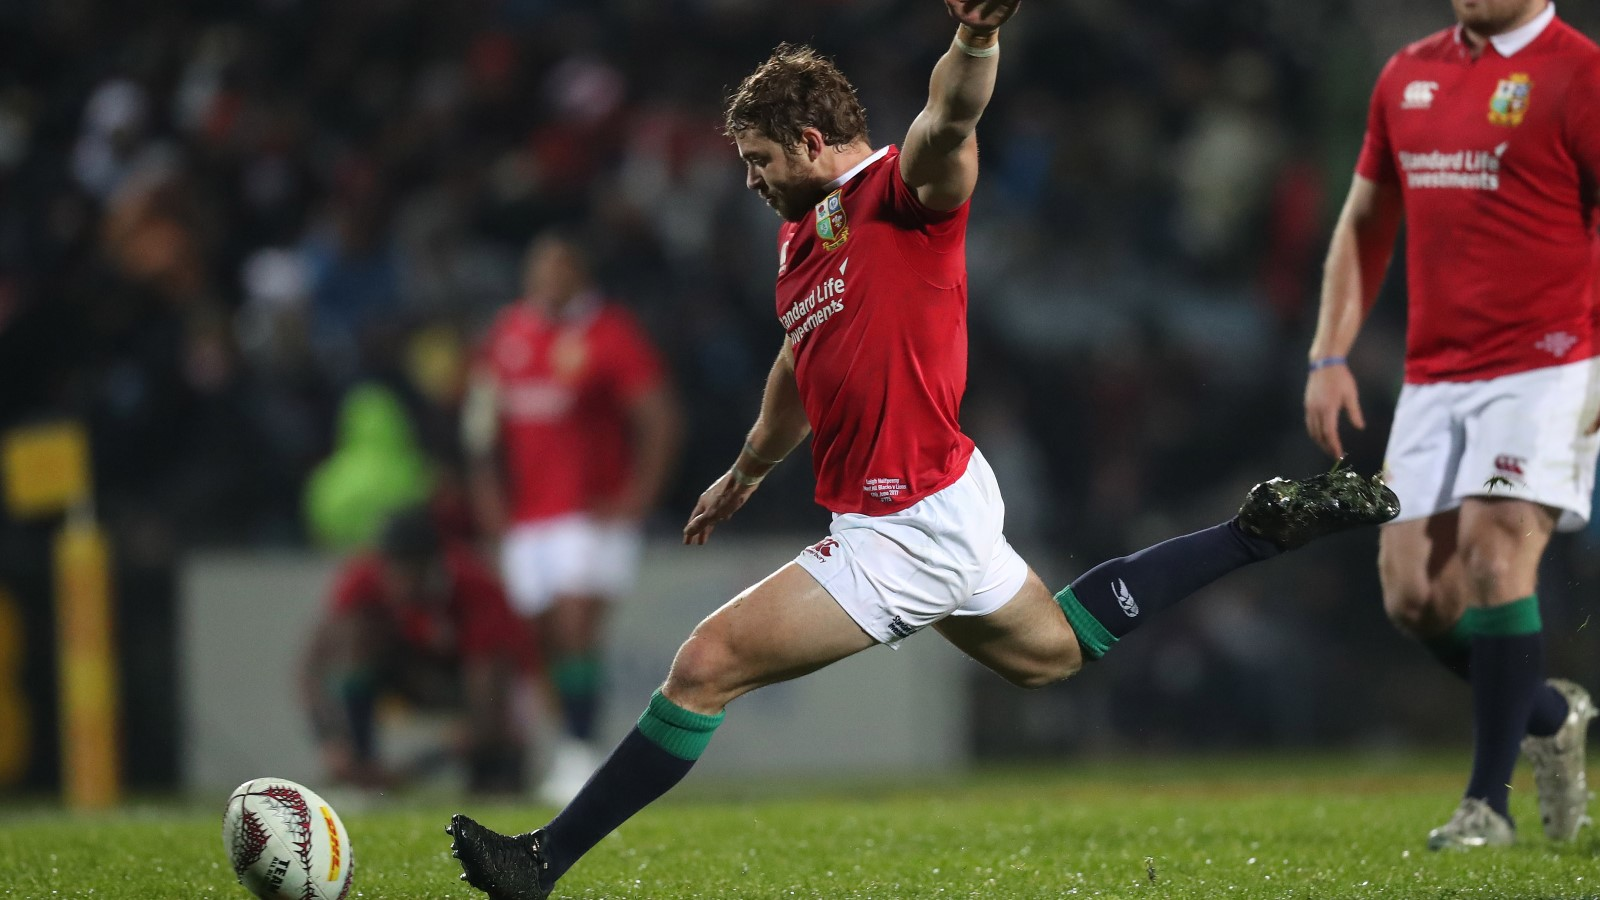 Halfpenny building fitness on return to action